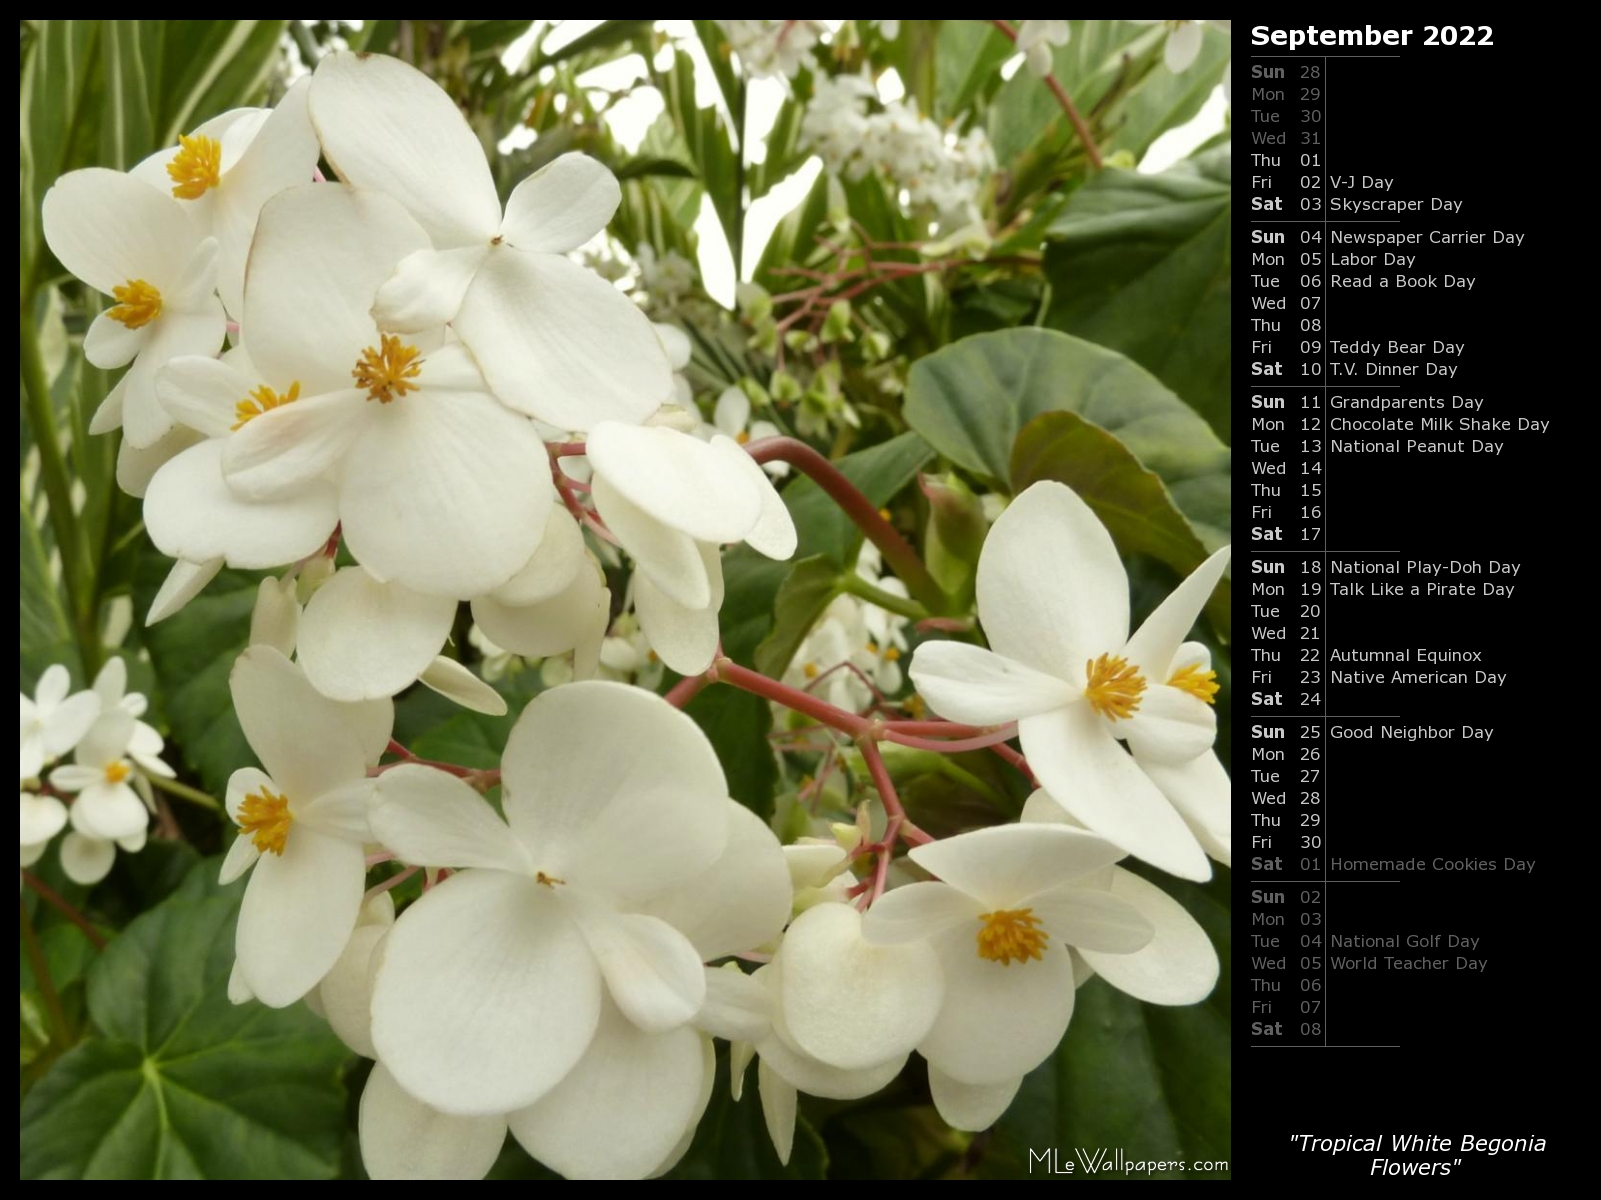 Mlewallpapers tropical white begonia flowers calendar tropical white begonia flowers mightylinksfo